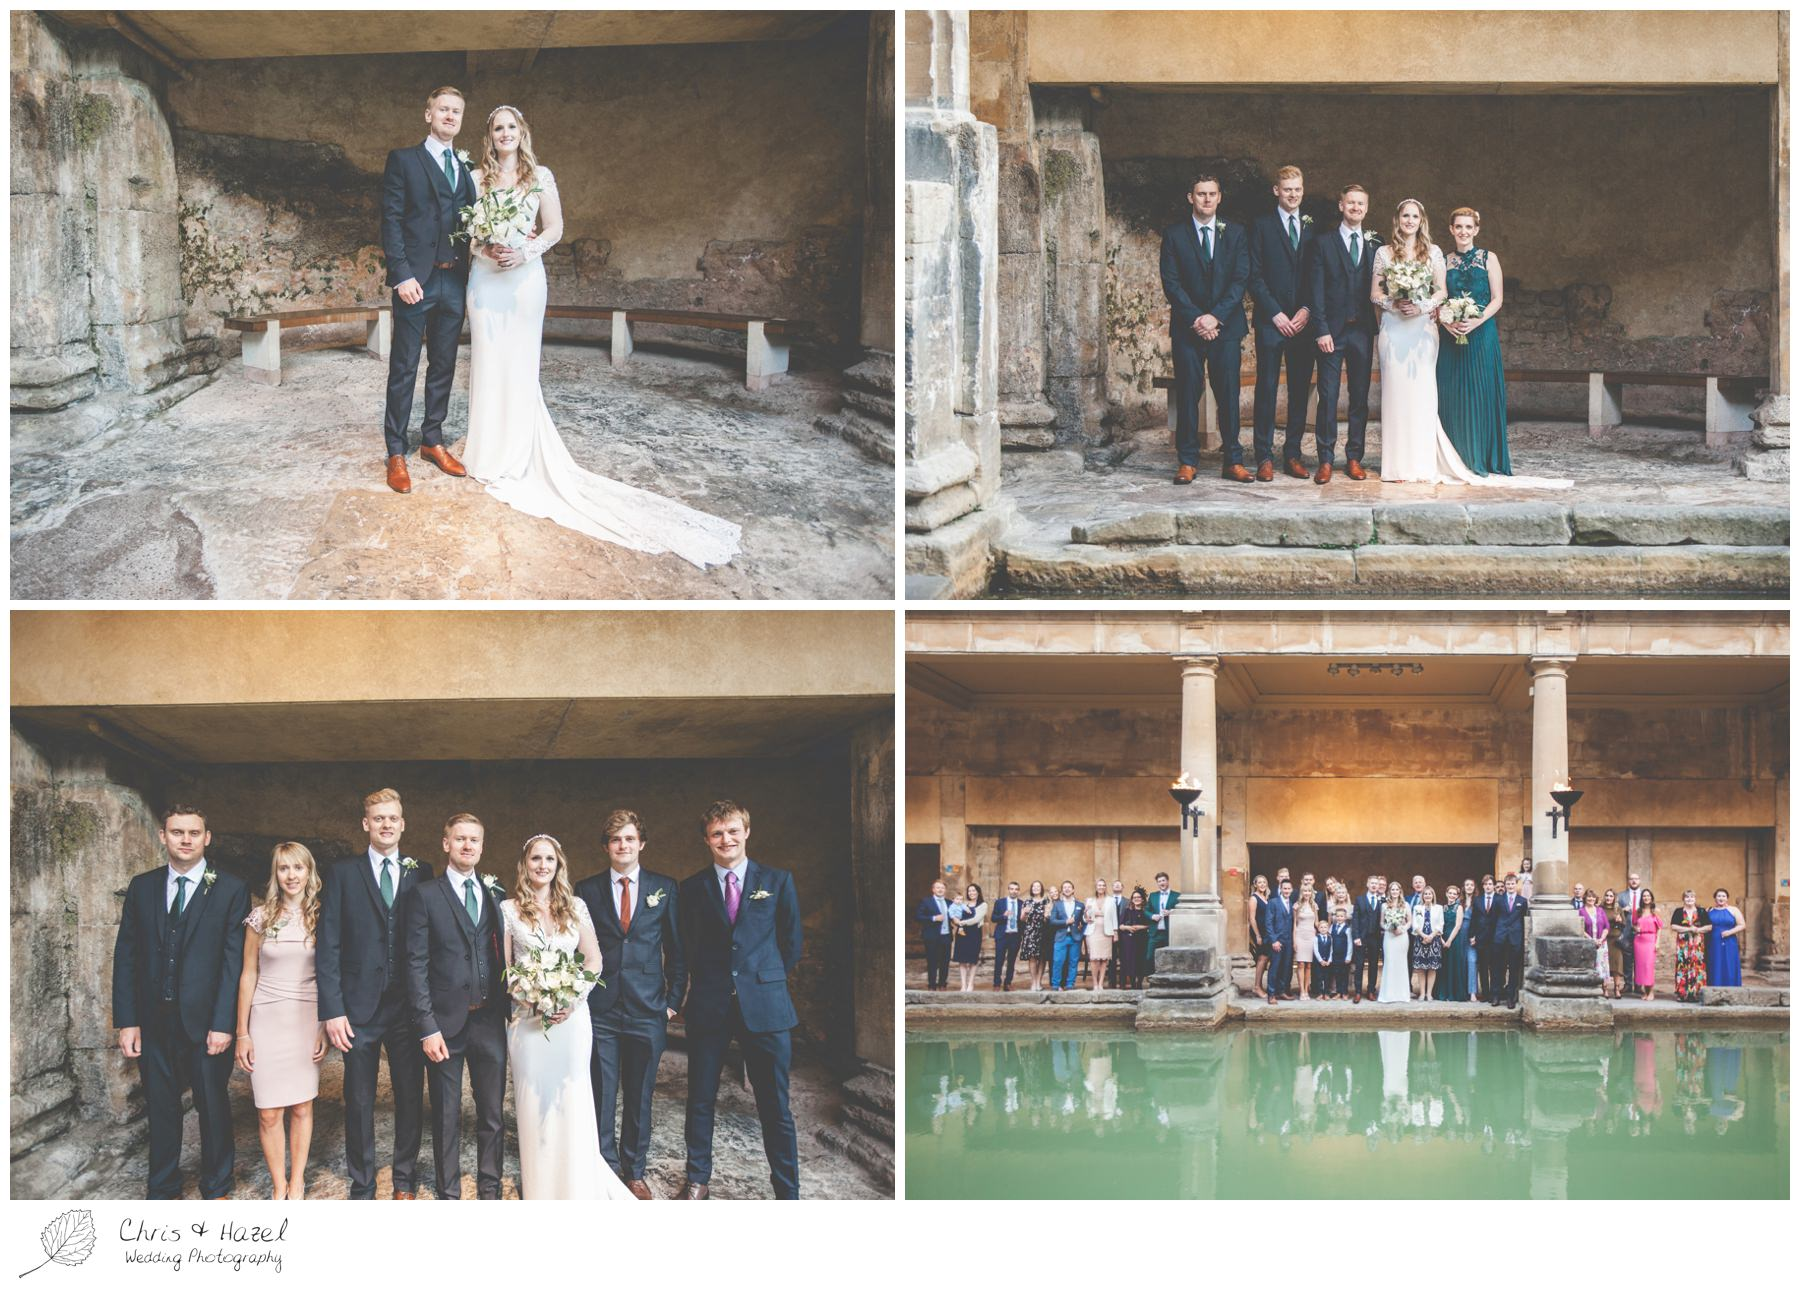 Bride and Groom portrait, family formal photographs at Roman Baths Pump Rooms, The Roman Baths Wedding Photography, Roman Baths Wedding Photographer, Wedding in Bath, Bath Wedding Day, documentary wedding photography, Chris and Hazel Wedding Photography Bath, Andy Frost Sian Upson